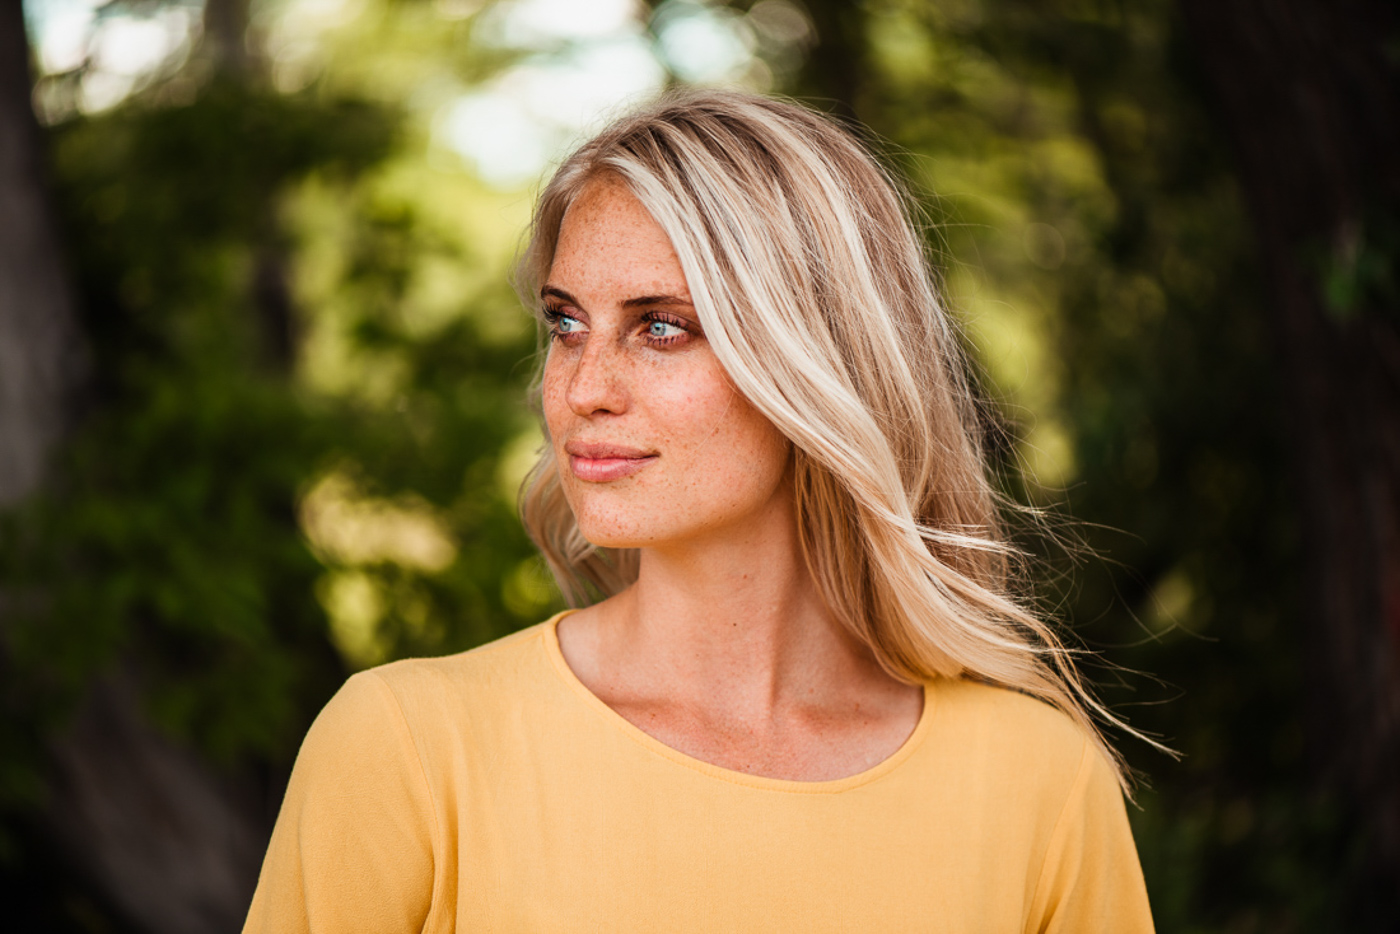 PHOCO Best of 2018 Photograph Fort Collins-26 Portrait Summer yellow green blonde tan blue eyes Courtney Cyr.jpg